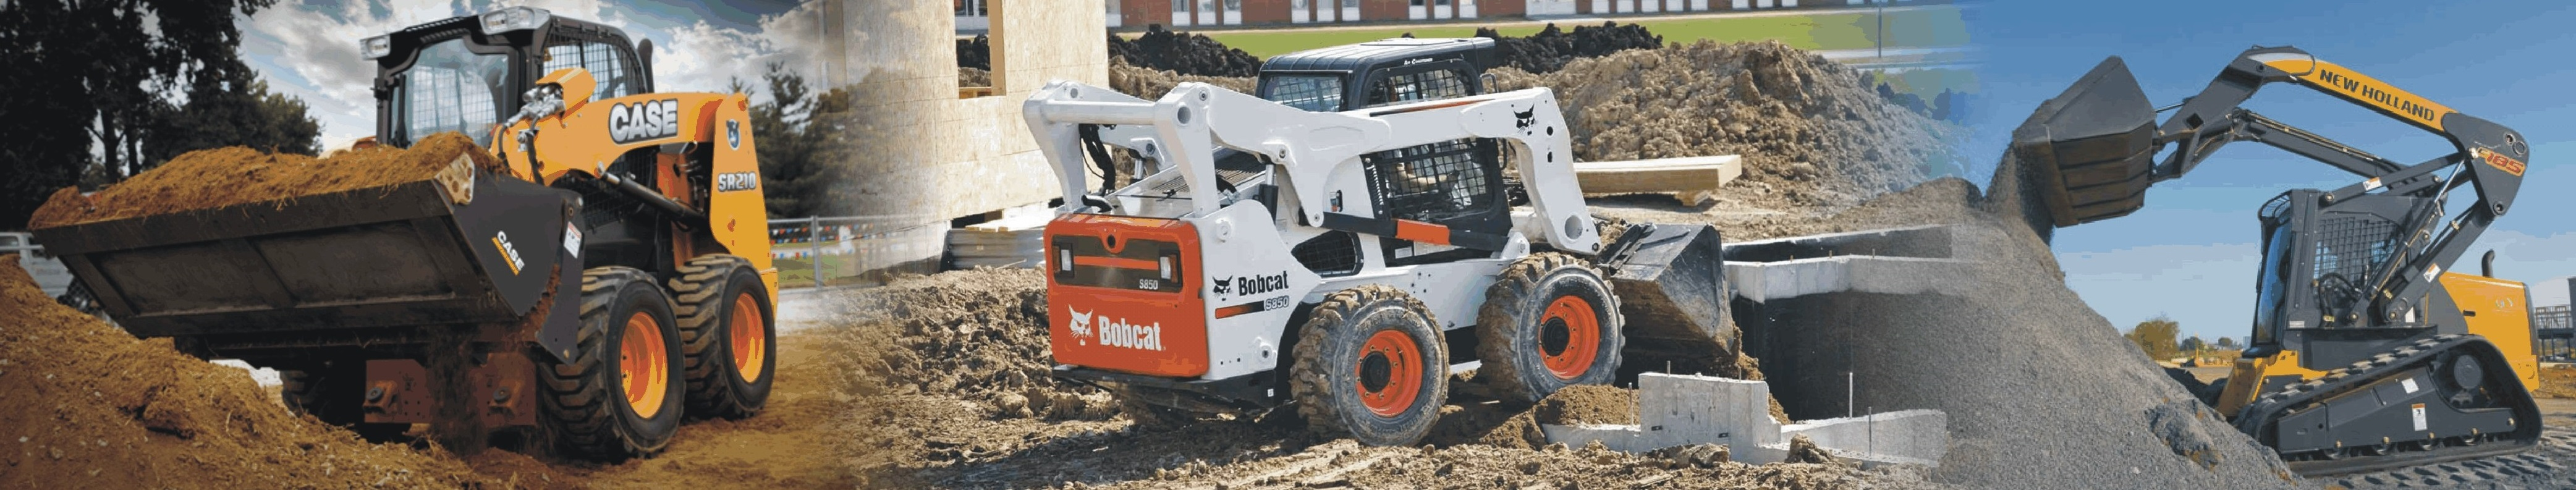 home page image 2?t=1484770053 skid steer parts superstore │ allskidsteers� case 90xt wiring diagram at mifinder.co